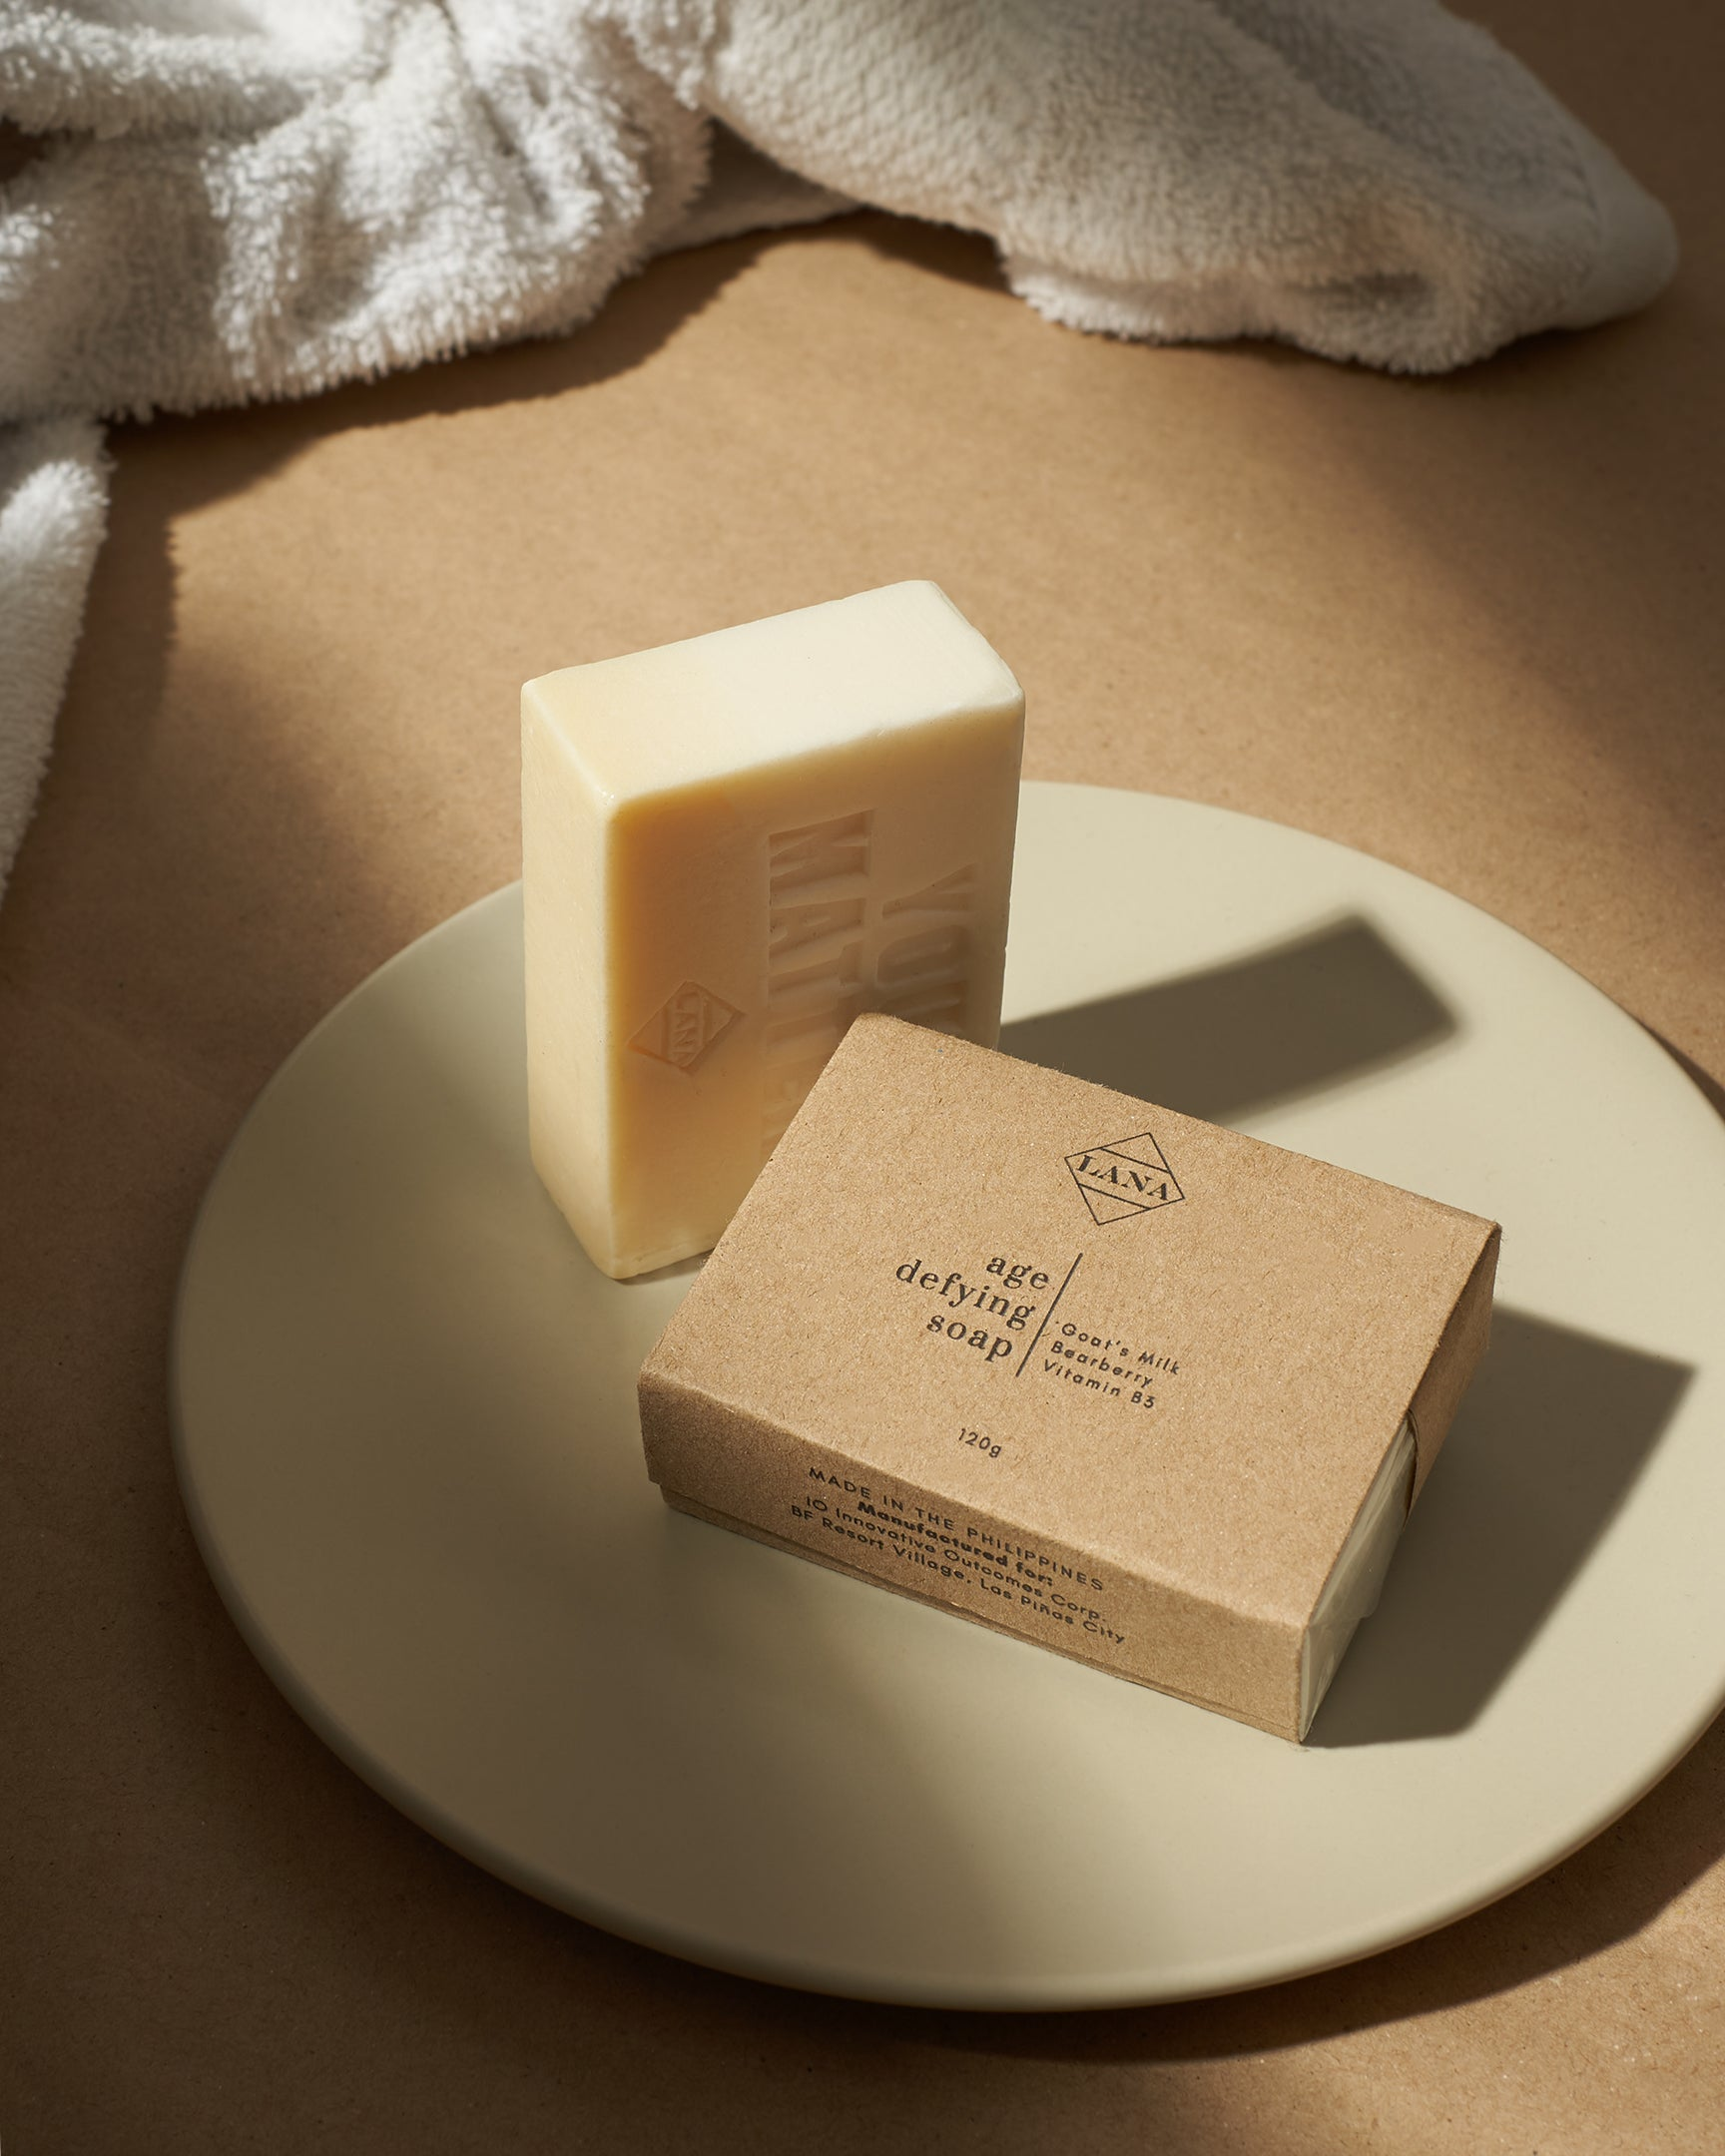 Age Defying Soap